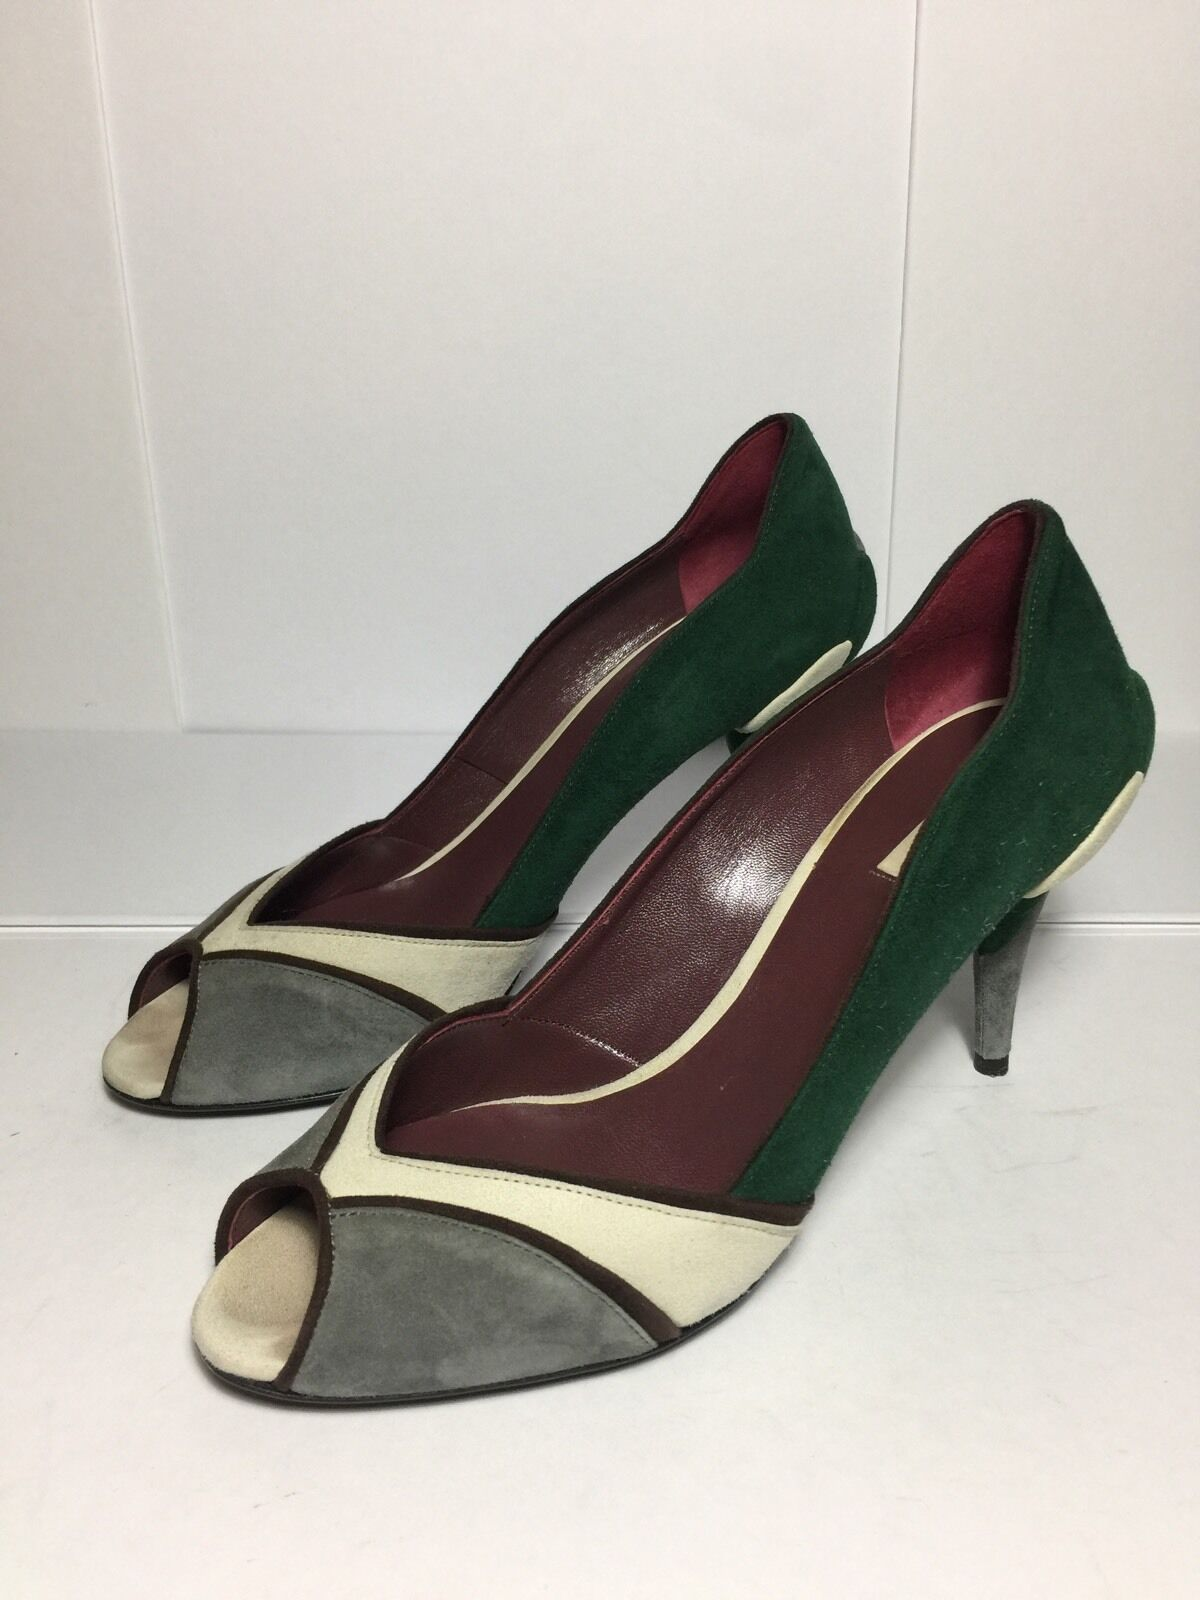 =QUIRKY CUTE= MIU MIU vert gris Mod Style Block Colour Suede 3D Art Heels US7